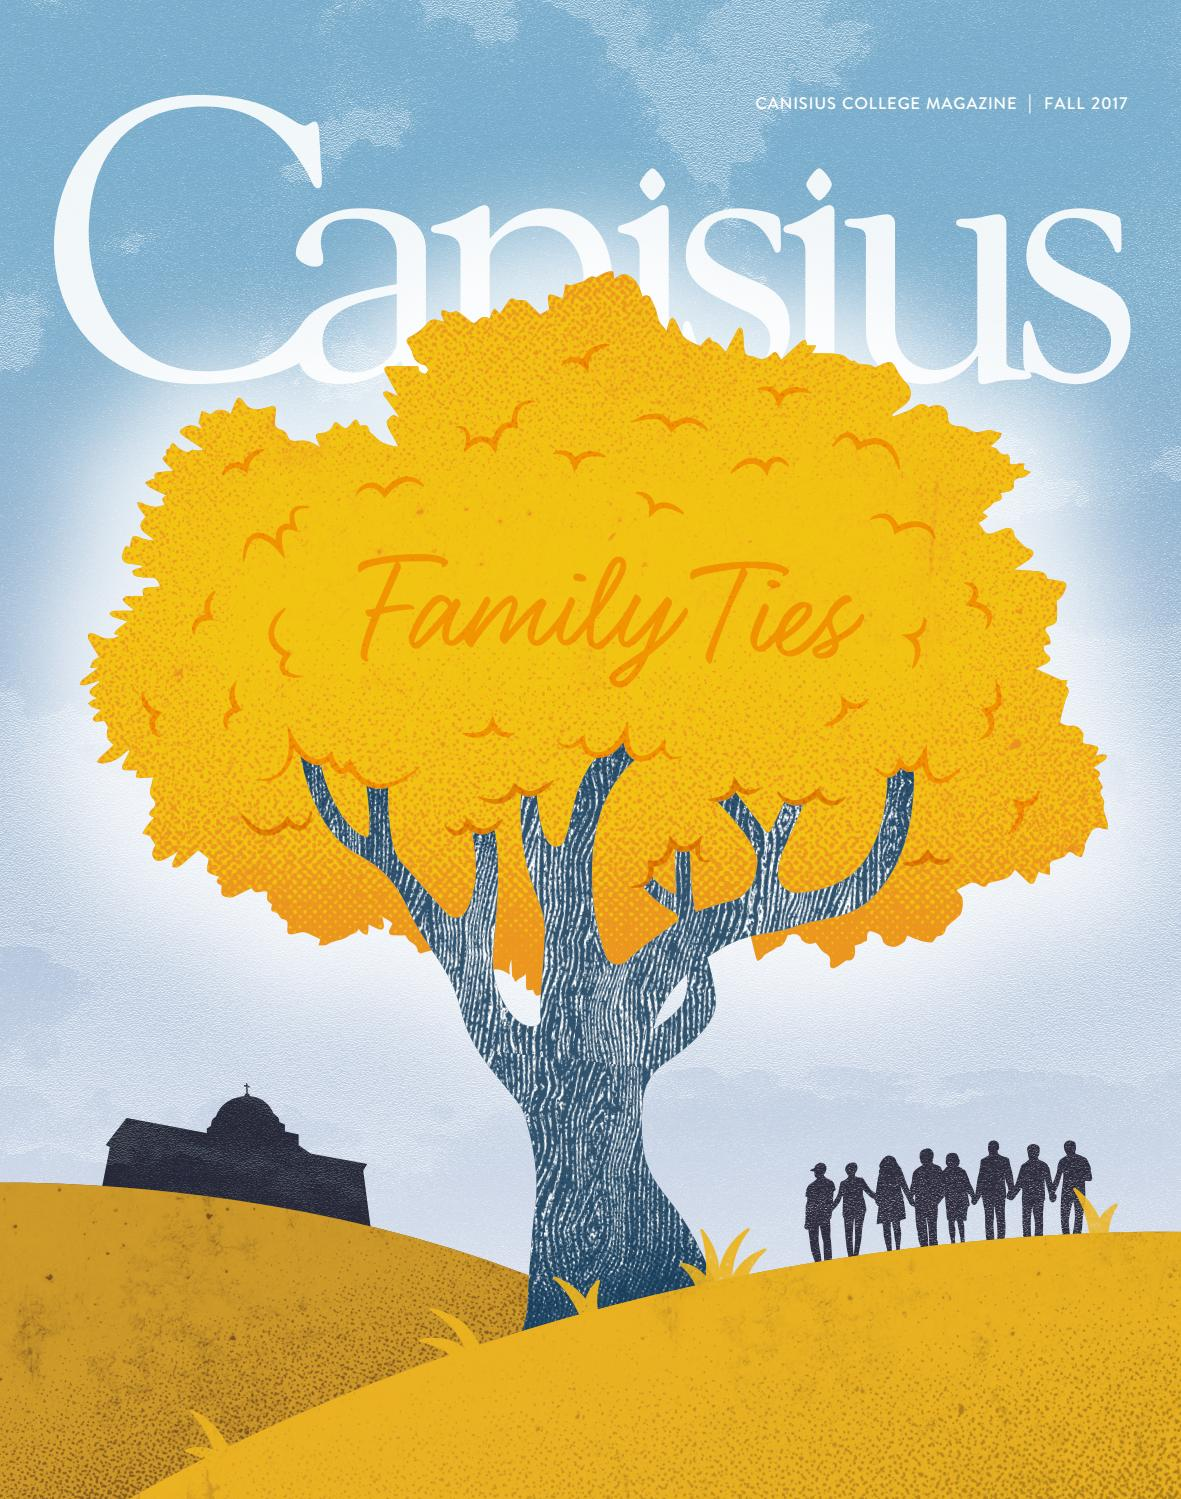 Canisius Magazine Fall 17 by Canisius College - issuu